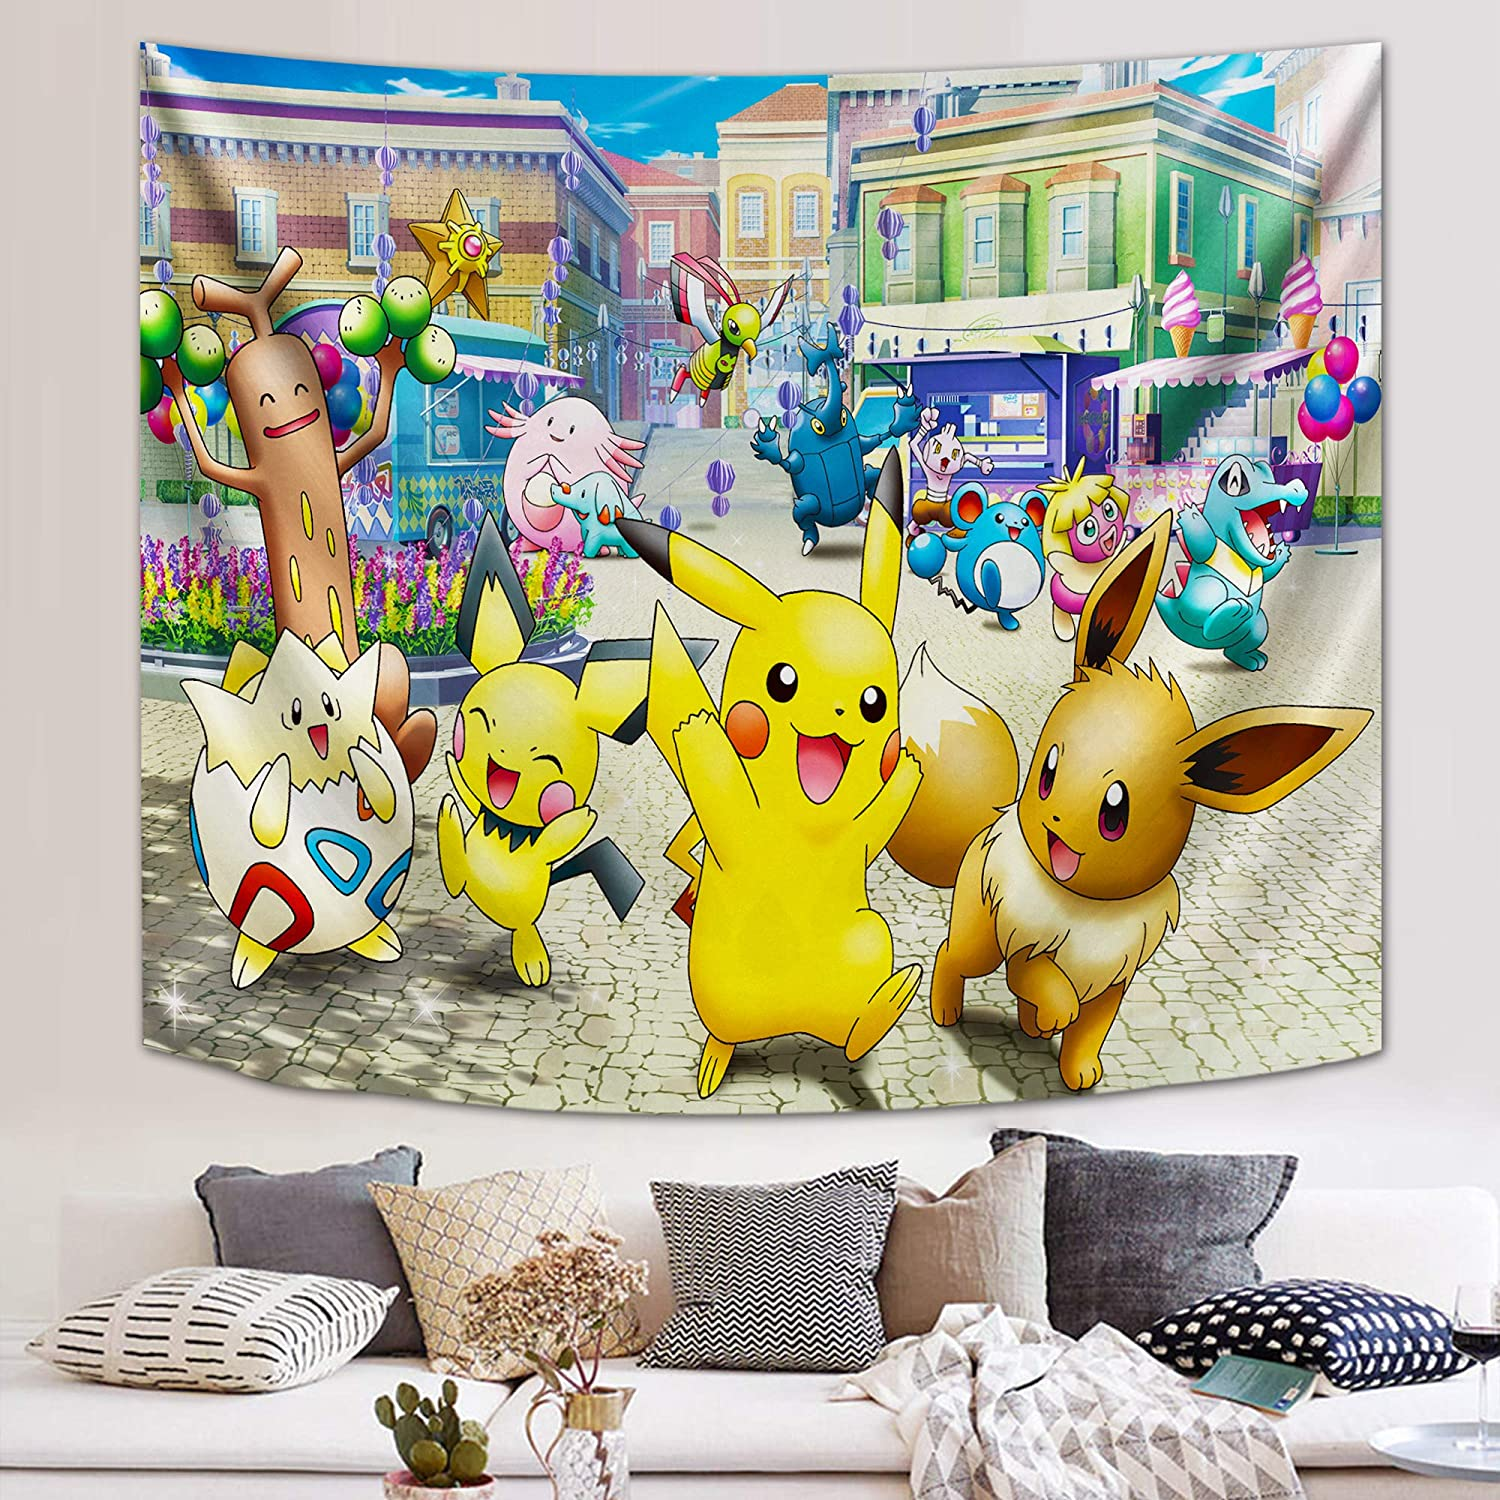 Anime Pokemon Tapestry Anime Wall Tapestry for Party Bedroom Decor 59x70in